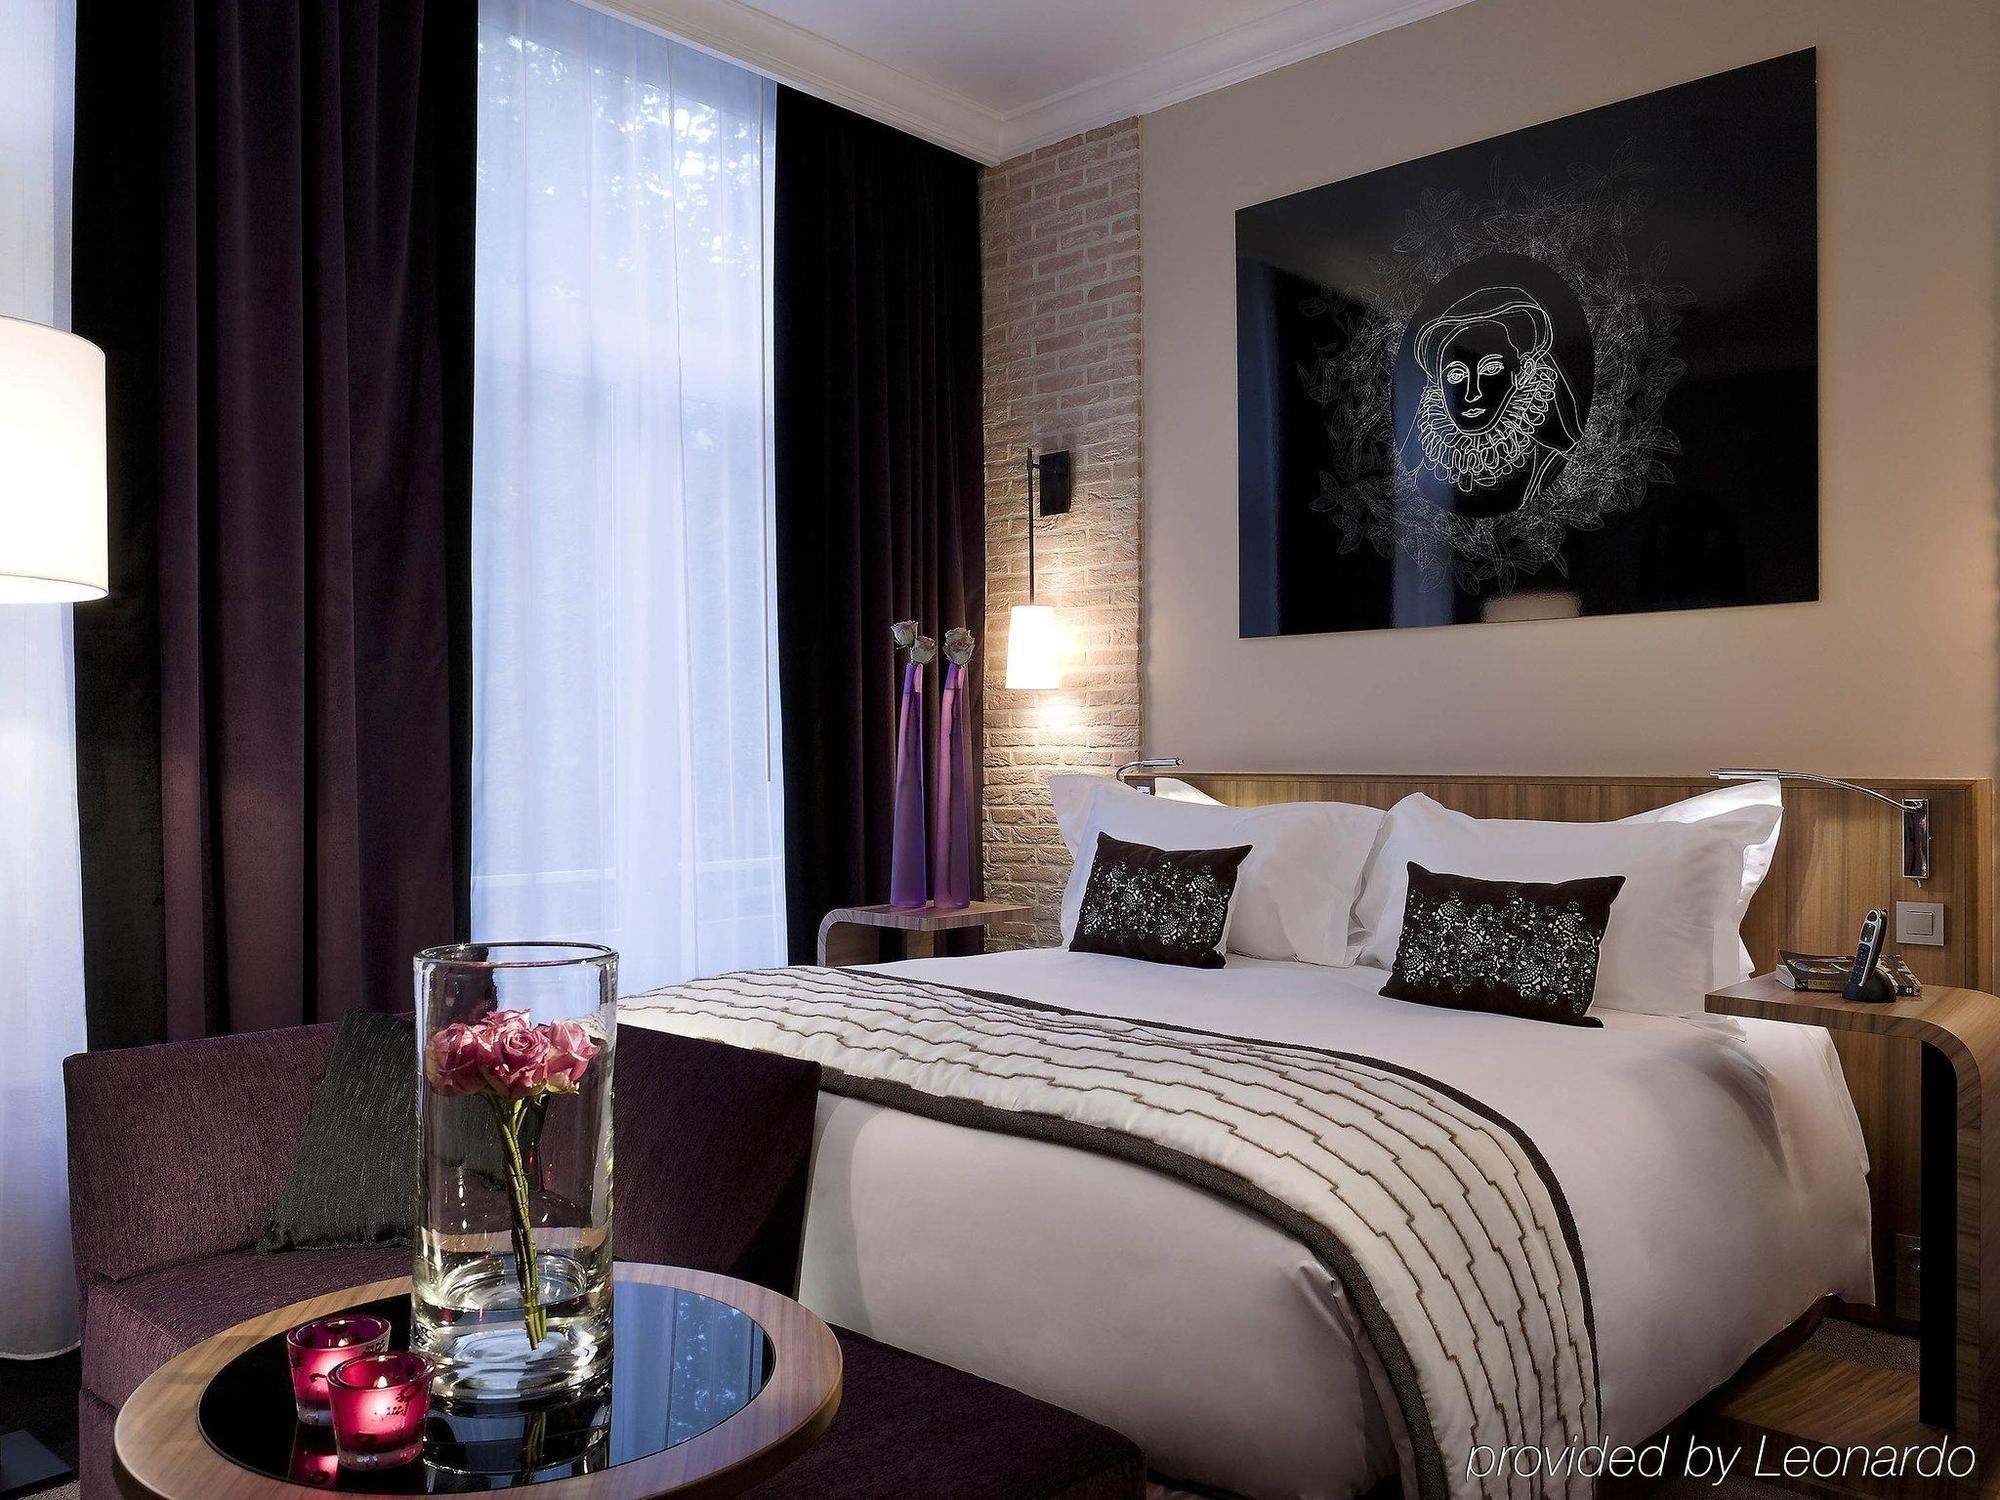 Hotel sofitel legend the grand amsterdam amsterdam for Amsterdam hotel